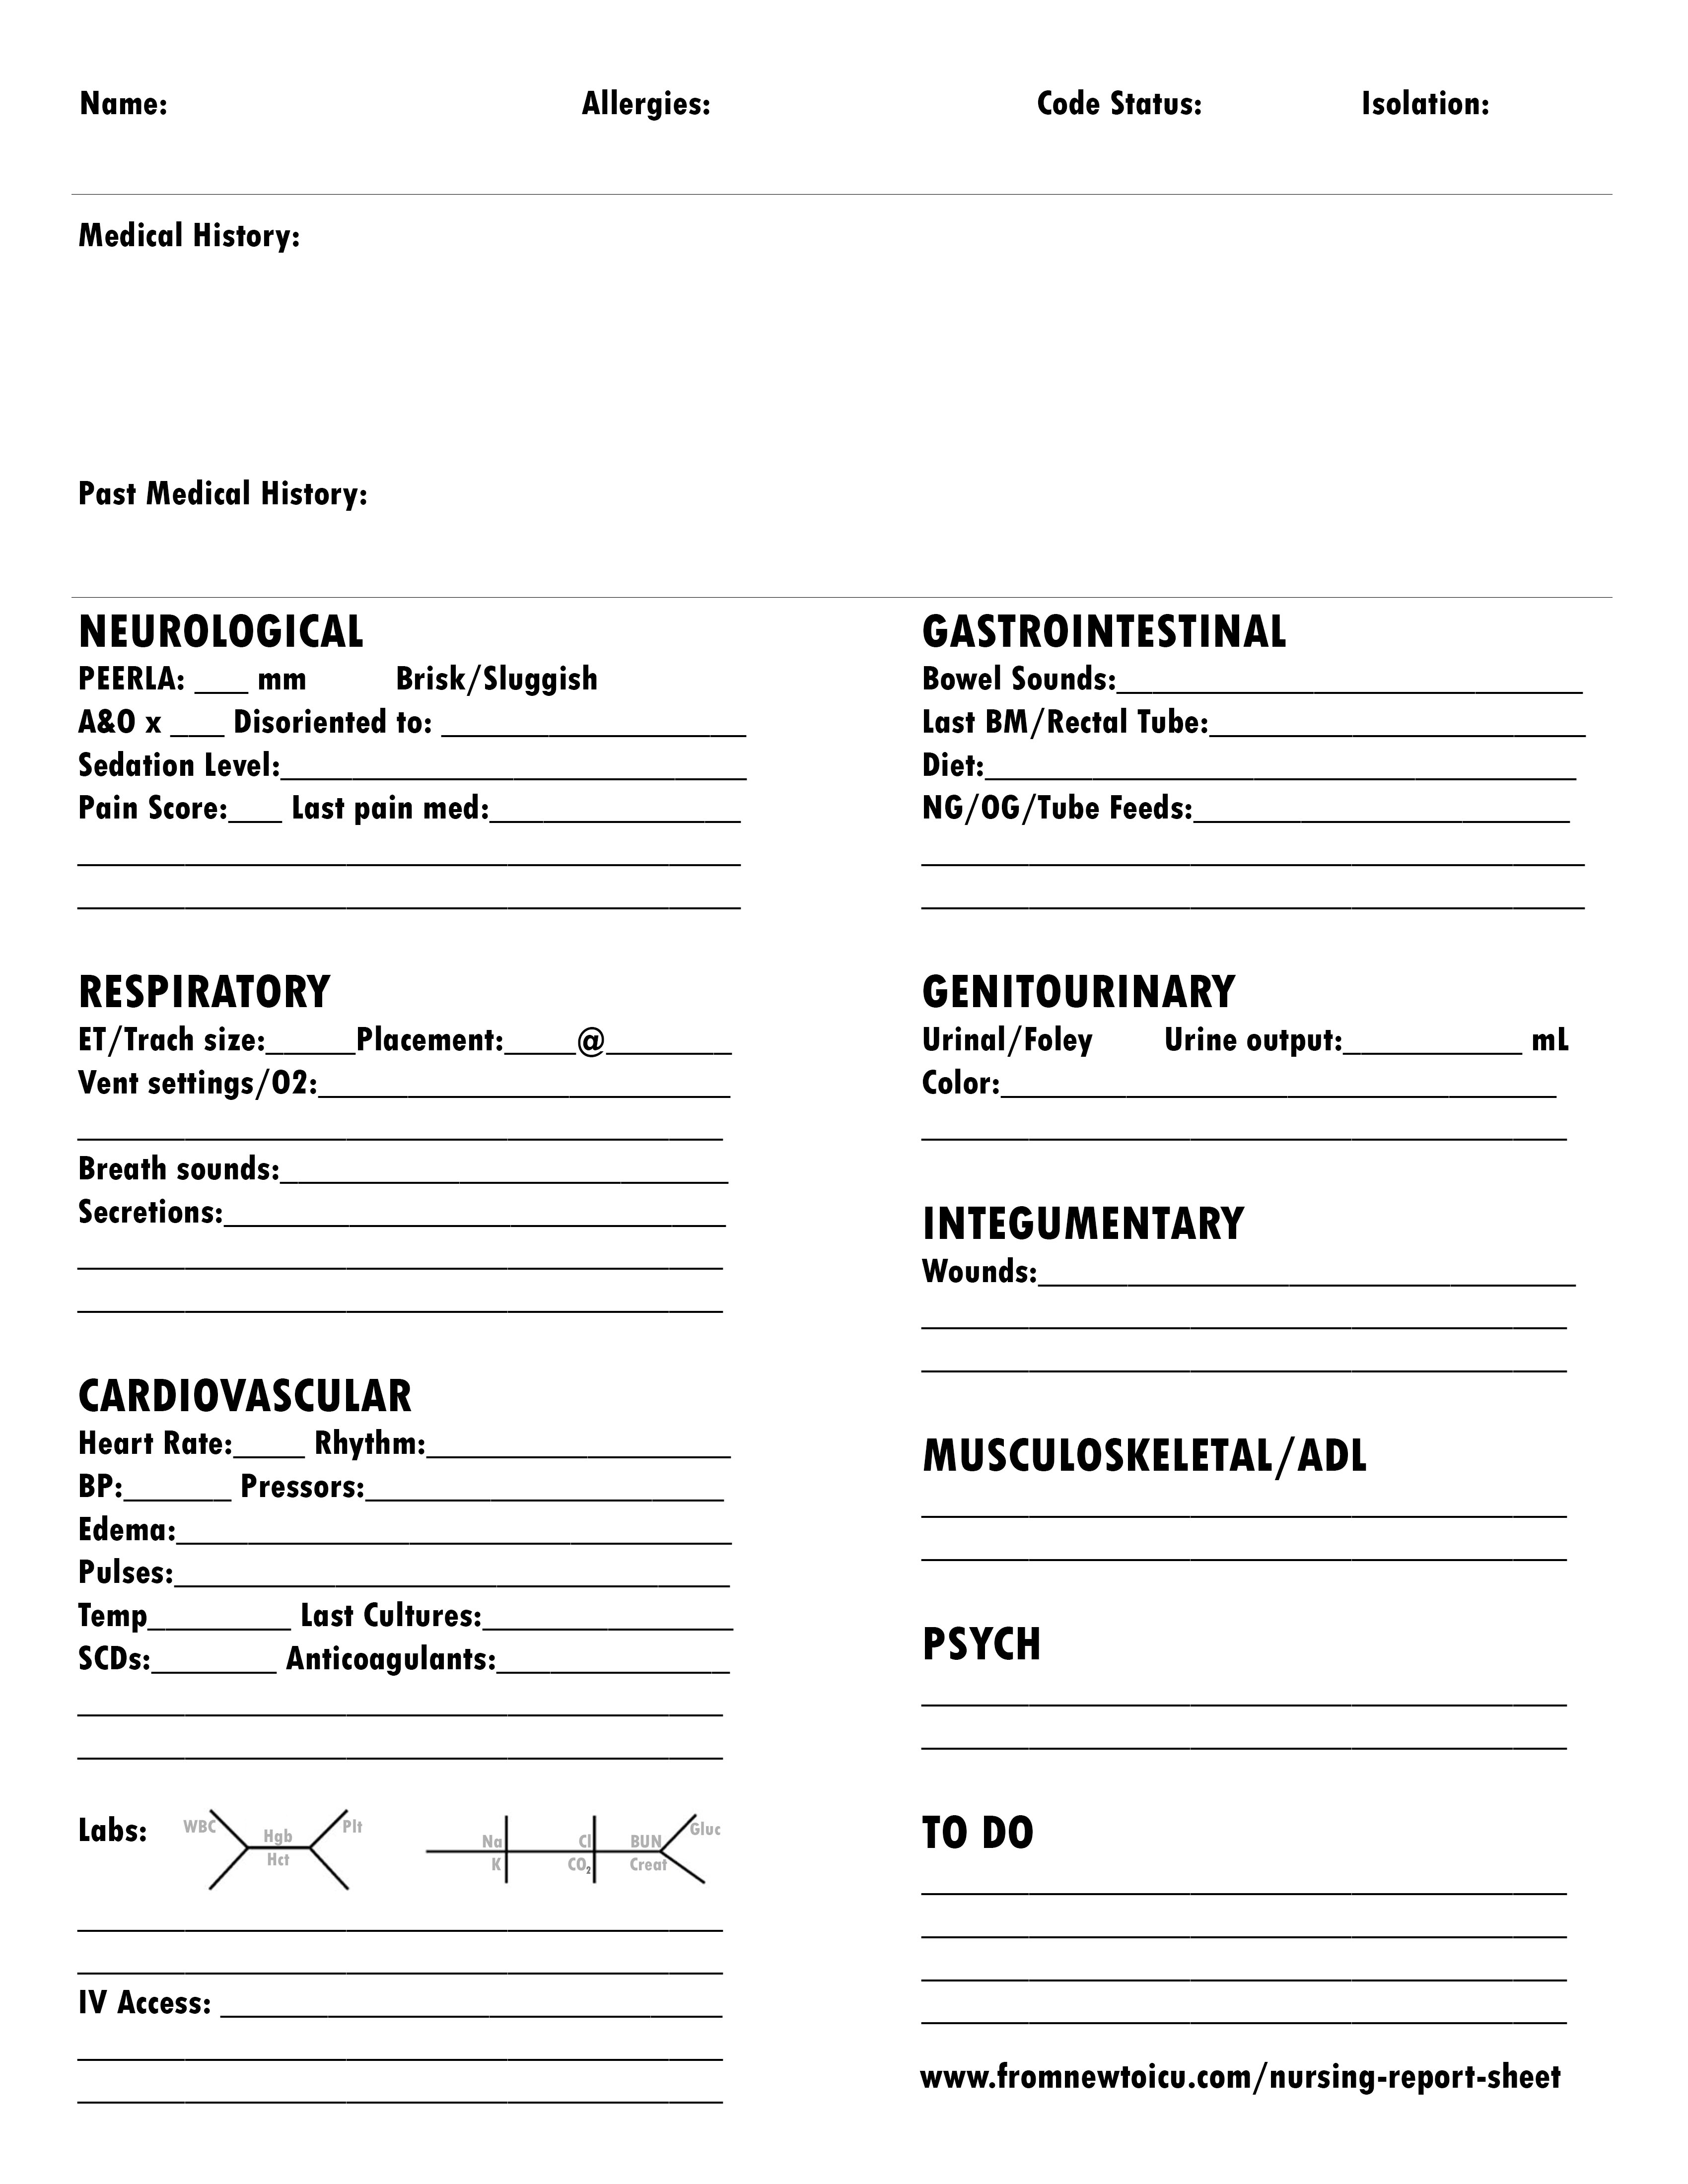 What Makes the Perfect Nursing Report Sheet? — From New to ICU